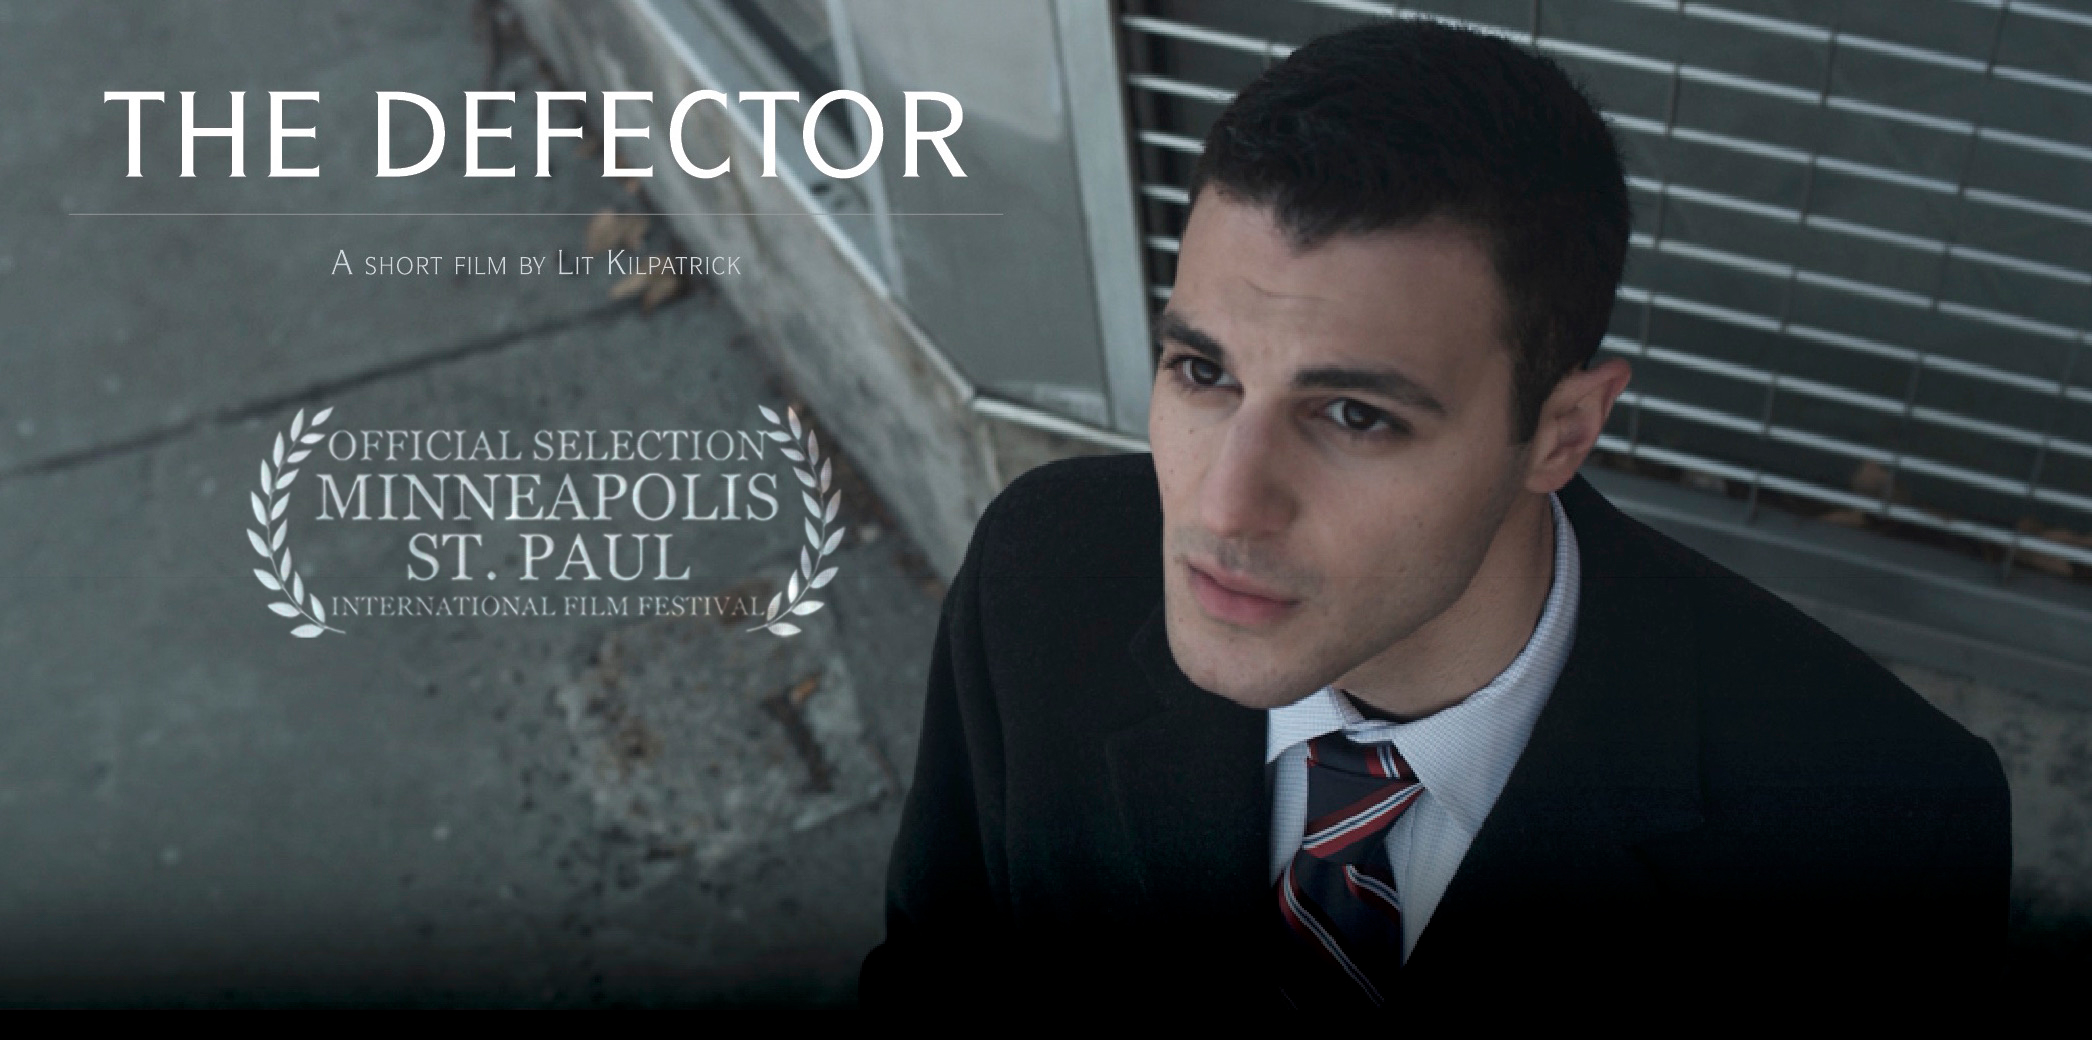 THE DEFECTOR OFFICIAL POSTER.jpg